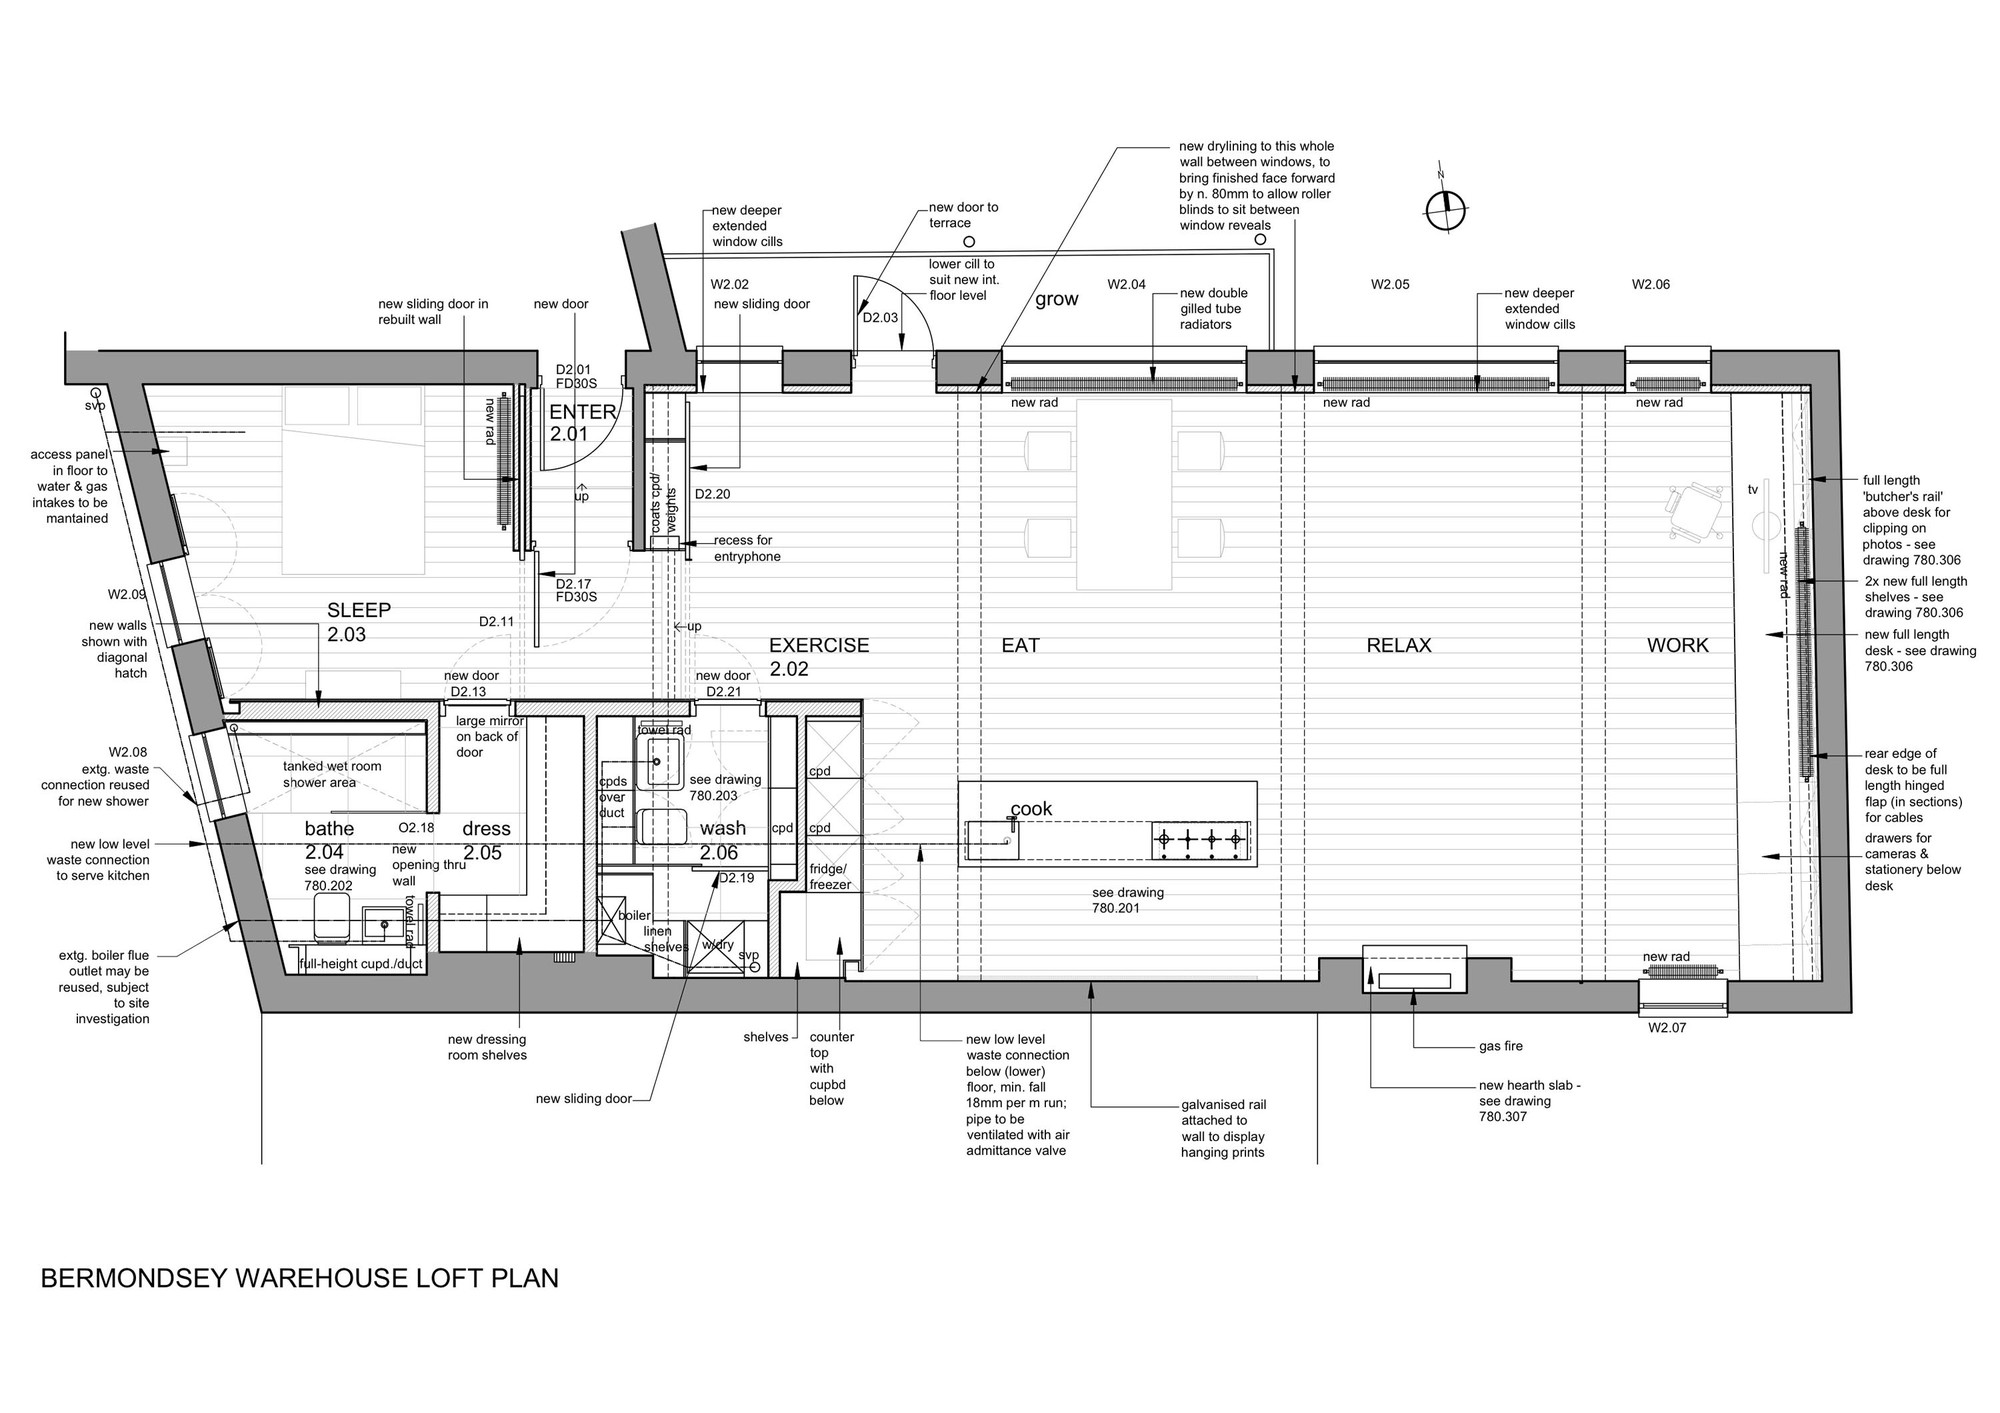 Bermondsey warehouse loft apartment form design for Warehouse floor plan design software free